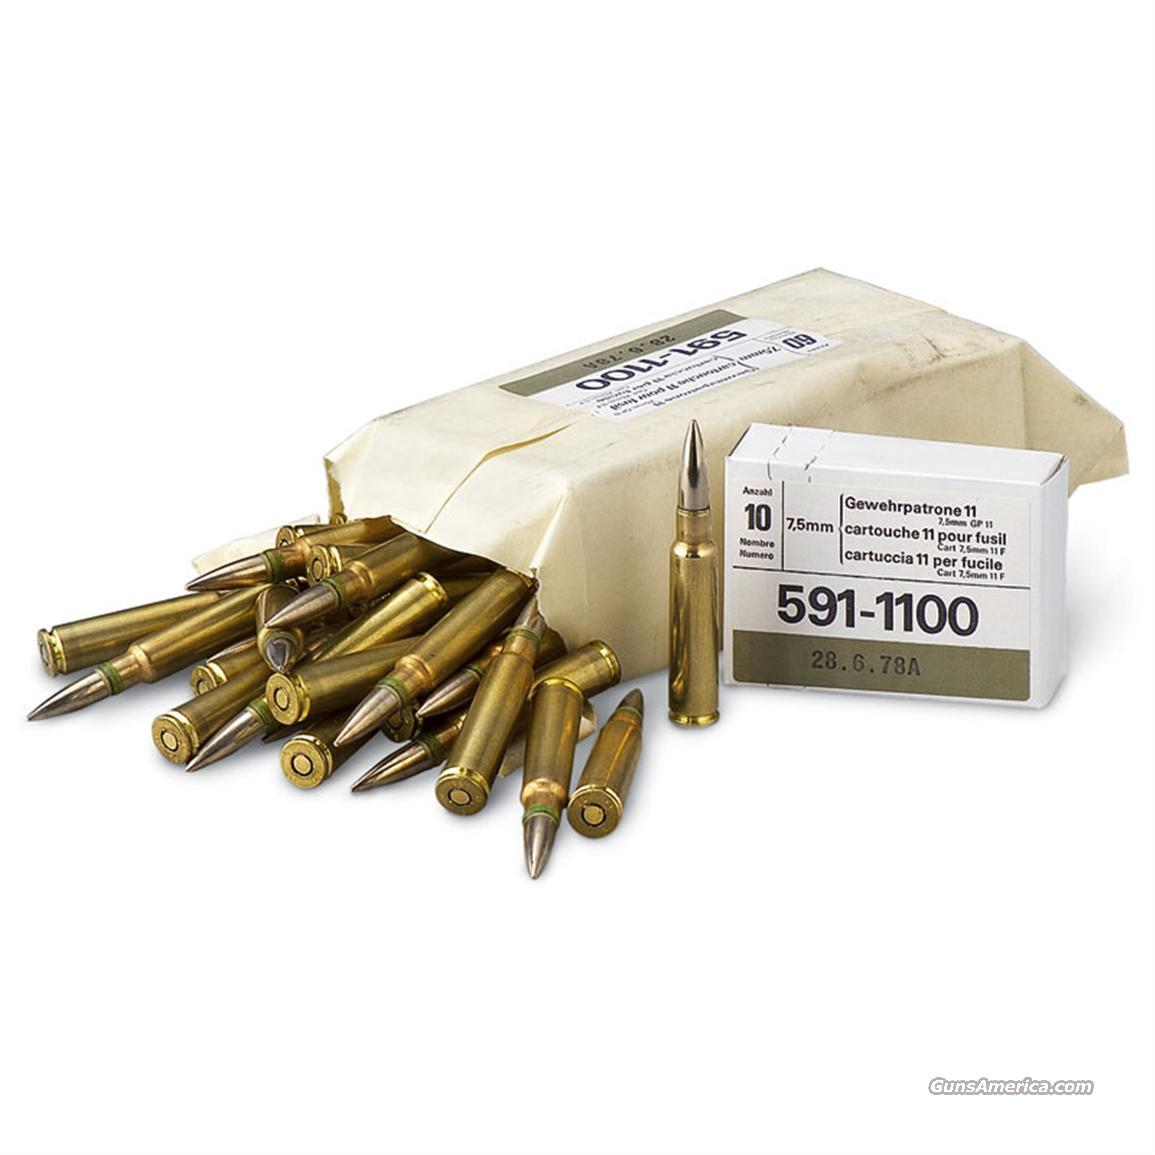 7.5X55 SWISS  Non-Guns > Ammunition